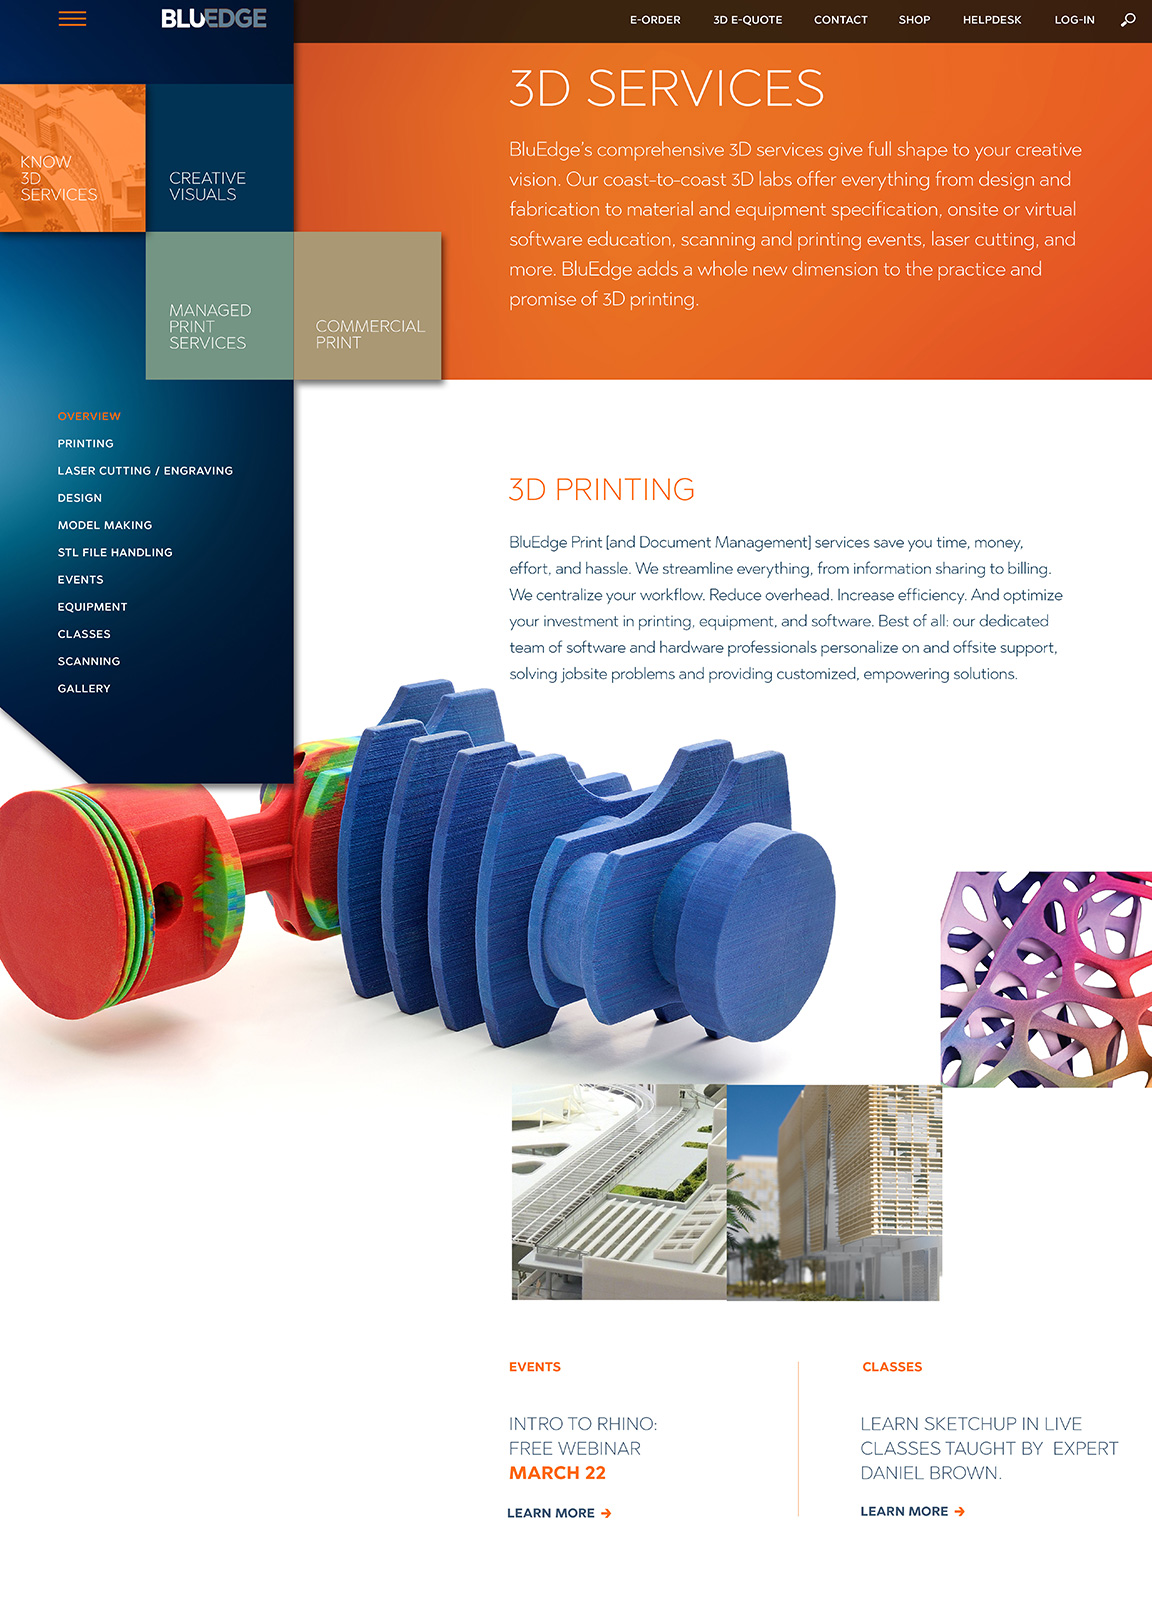 BluEdge company rebranding applied to the 3D services website page